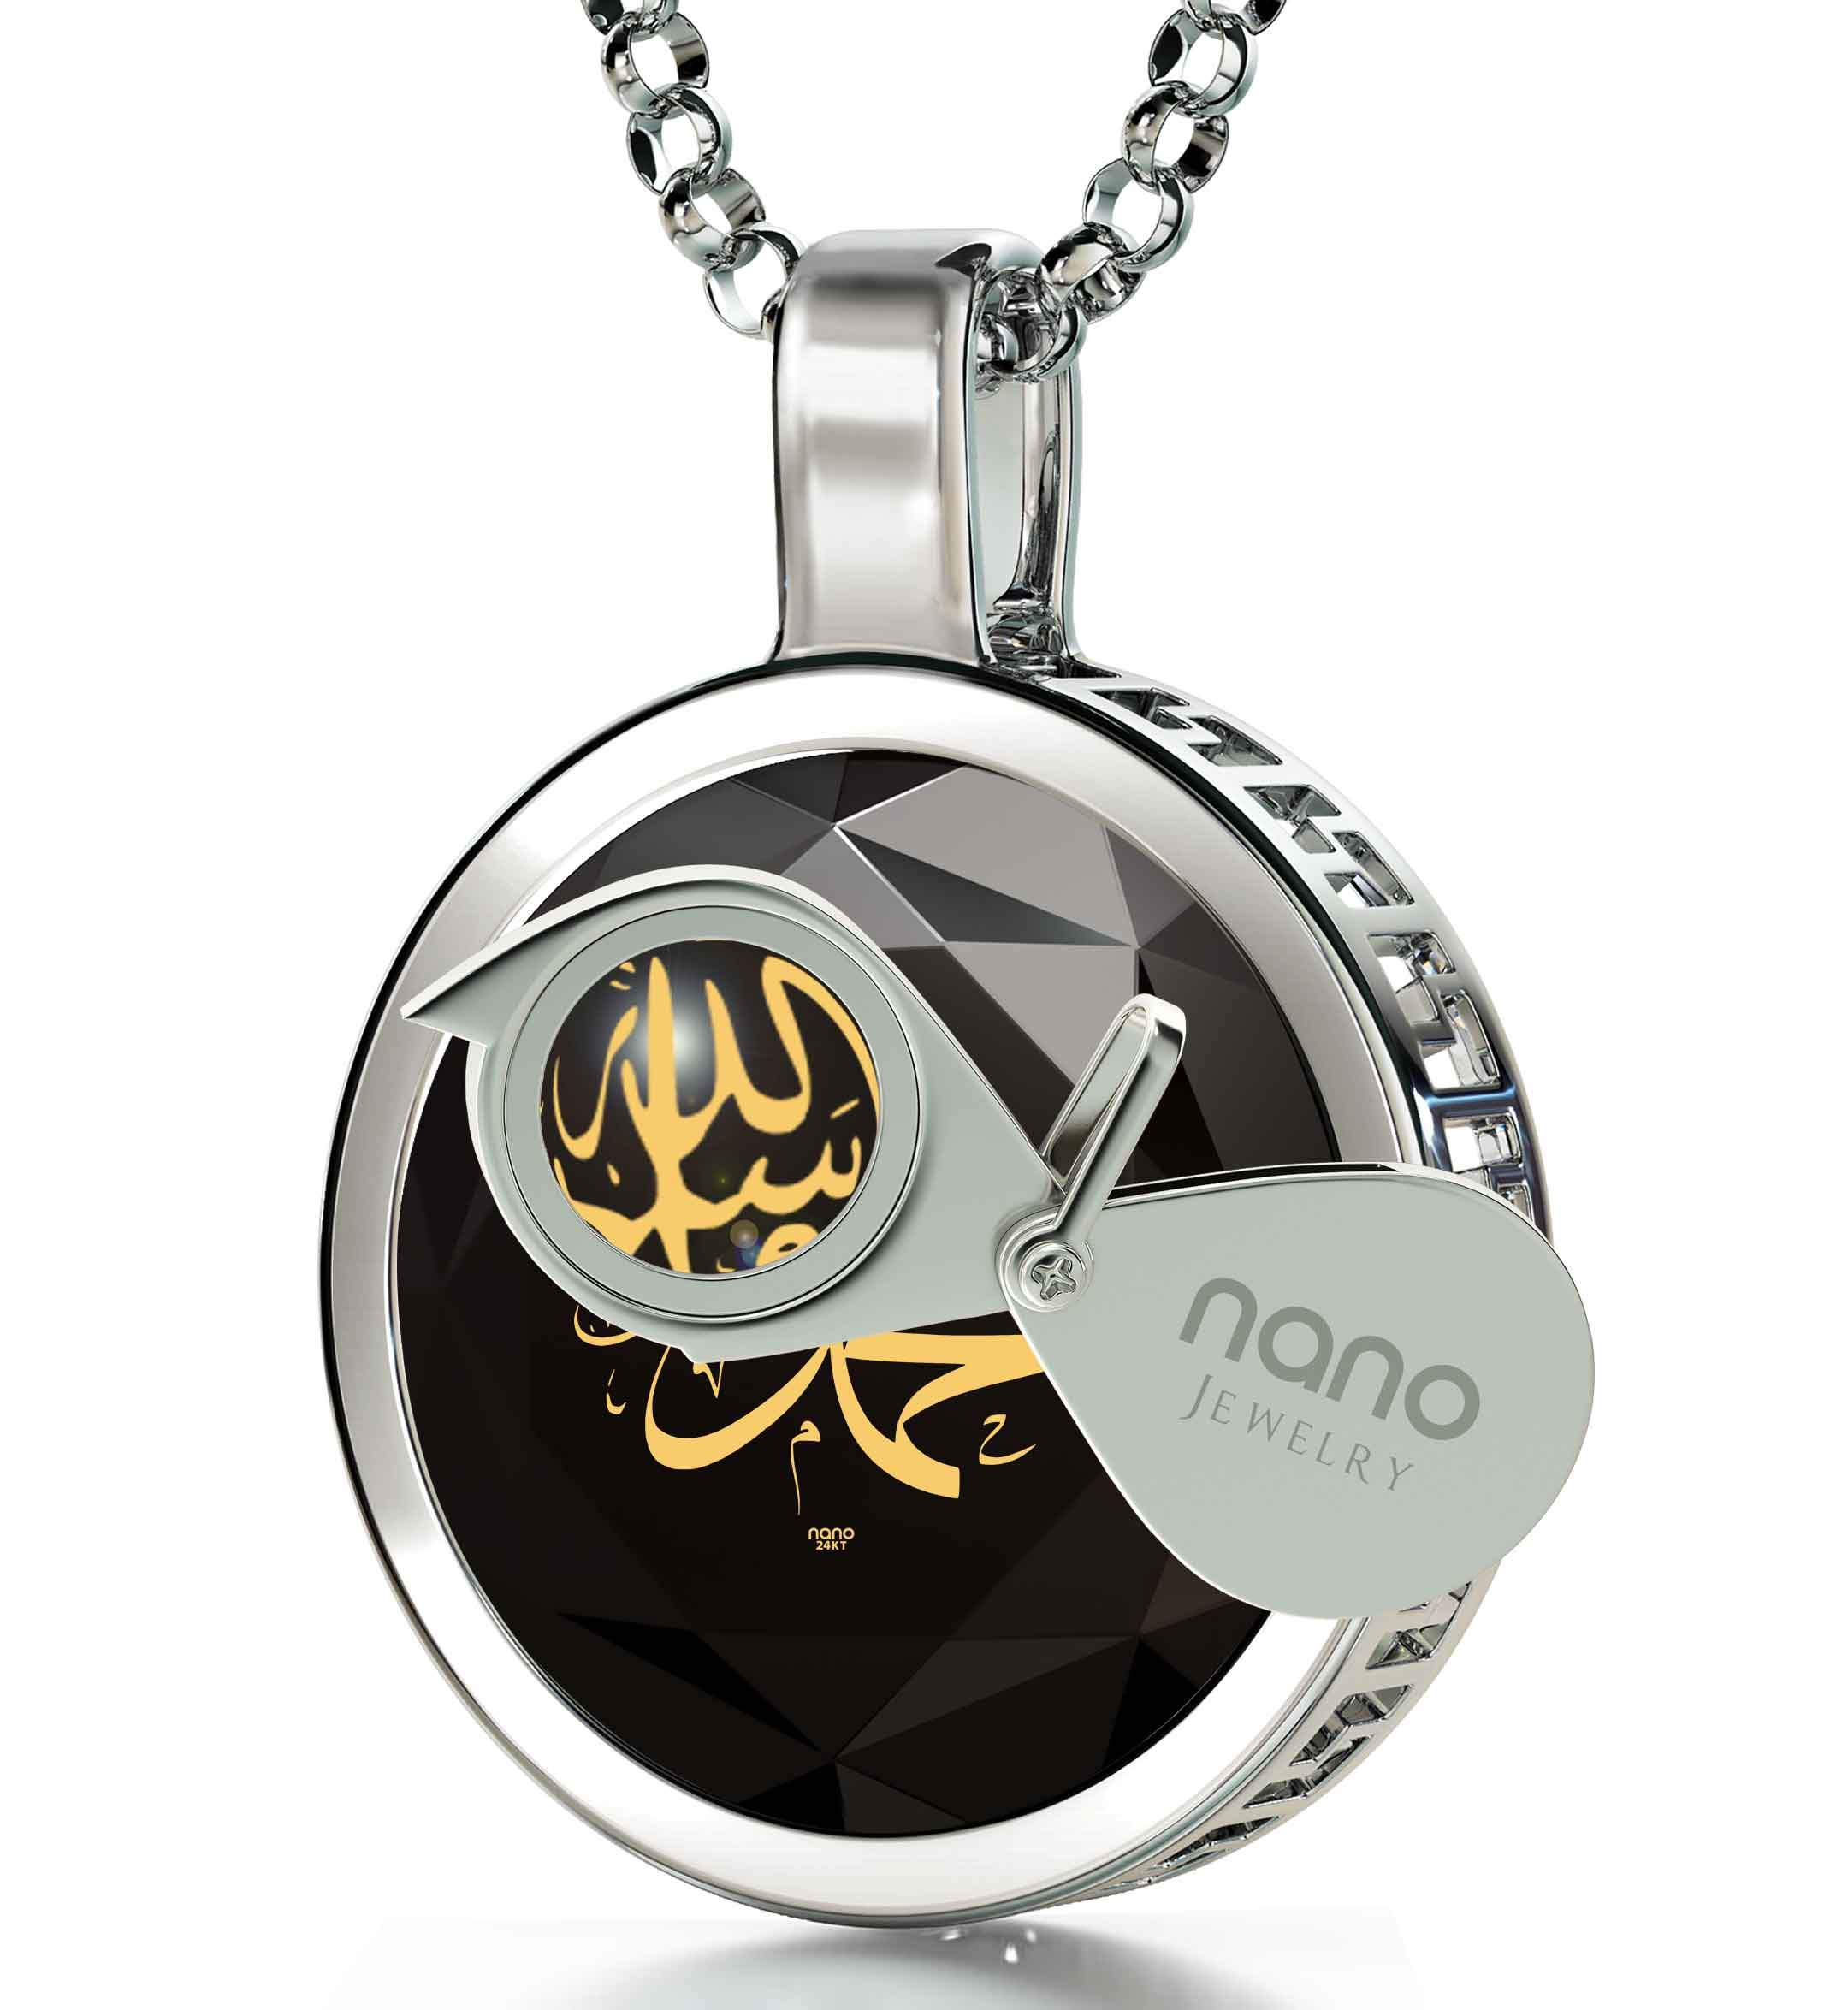 """Muhammad"" Imprinted on CZ Jewellery, Muslim Gifts for Her, Islamic Pendant, Sterling Silver Necklace Chain"